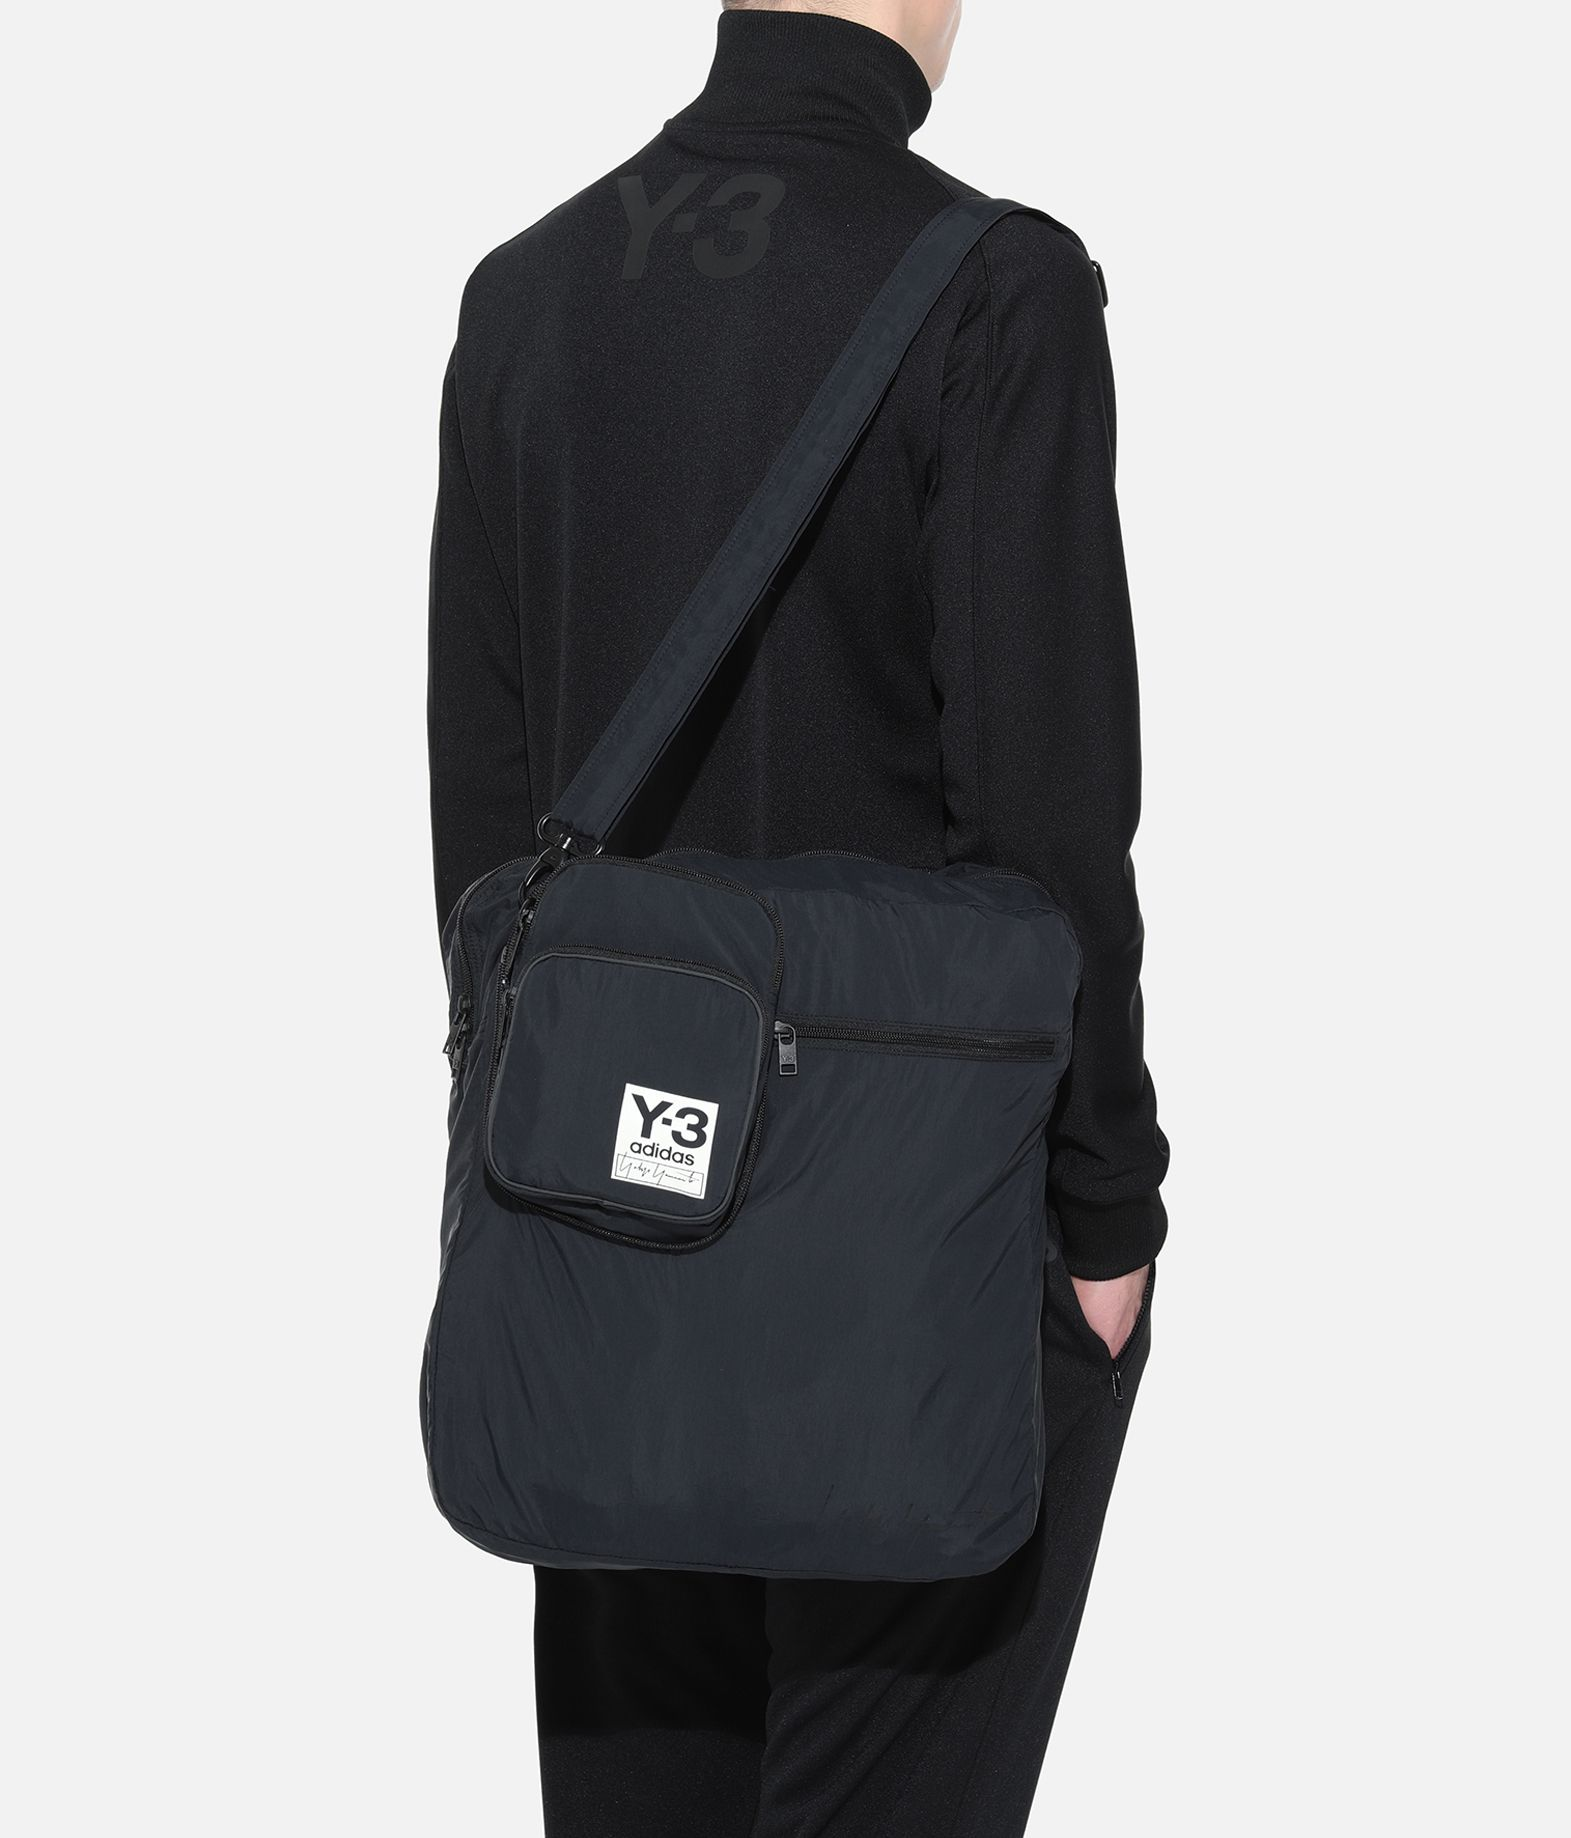 Y-3 Y-3 Packable Airliner Bag ショルダーバッグ E r